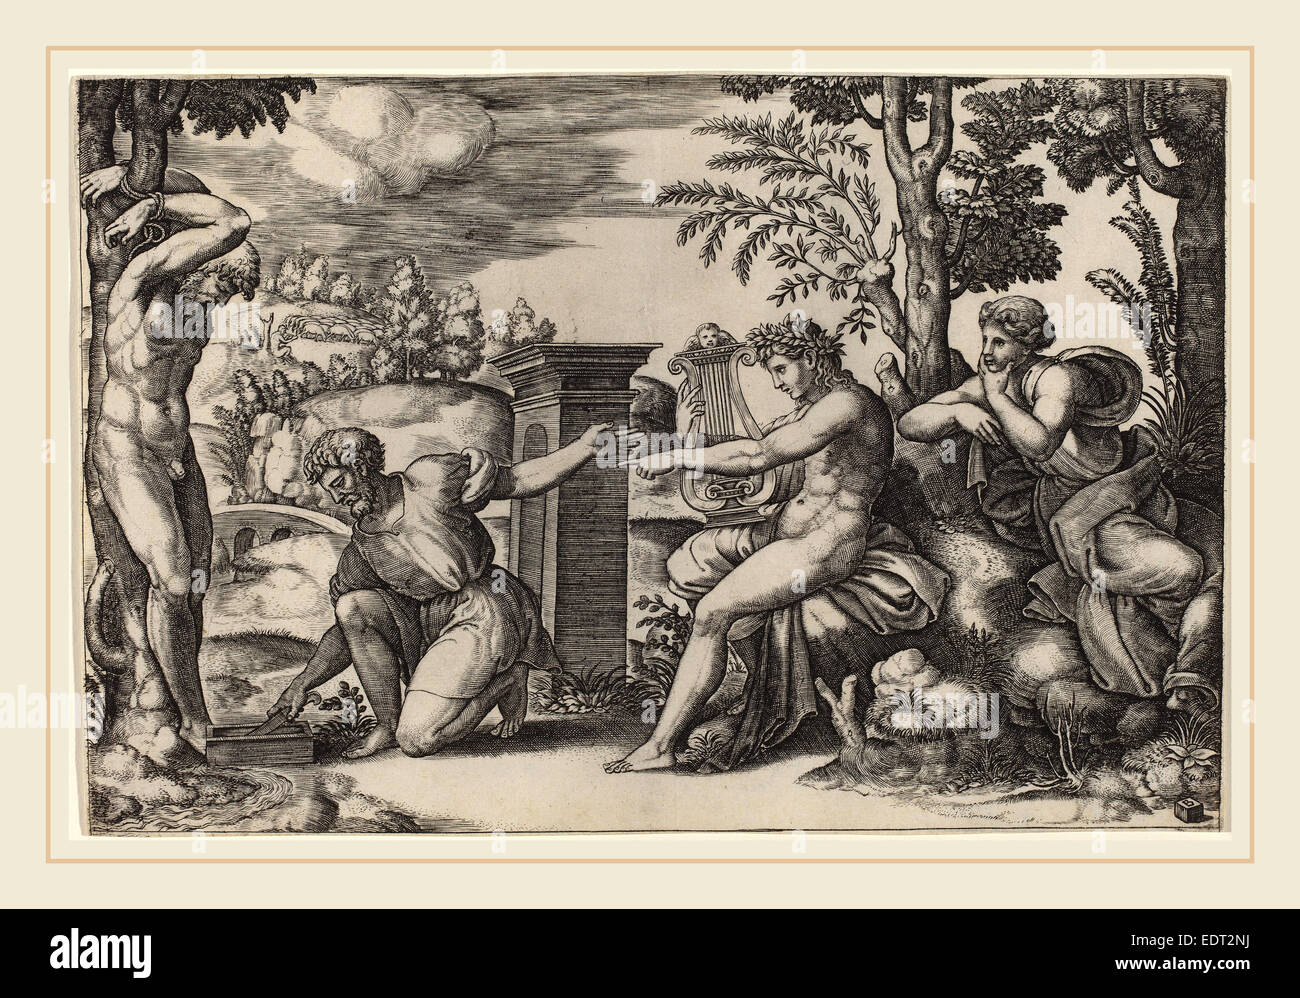 Master of the Die after Raphael (Italian, active c. 1532), Apollo and Marsyas, engraving - Stock Image